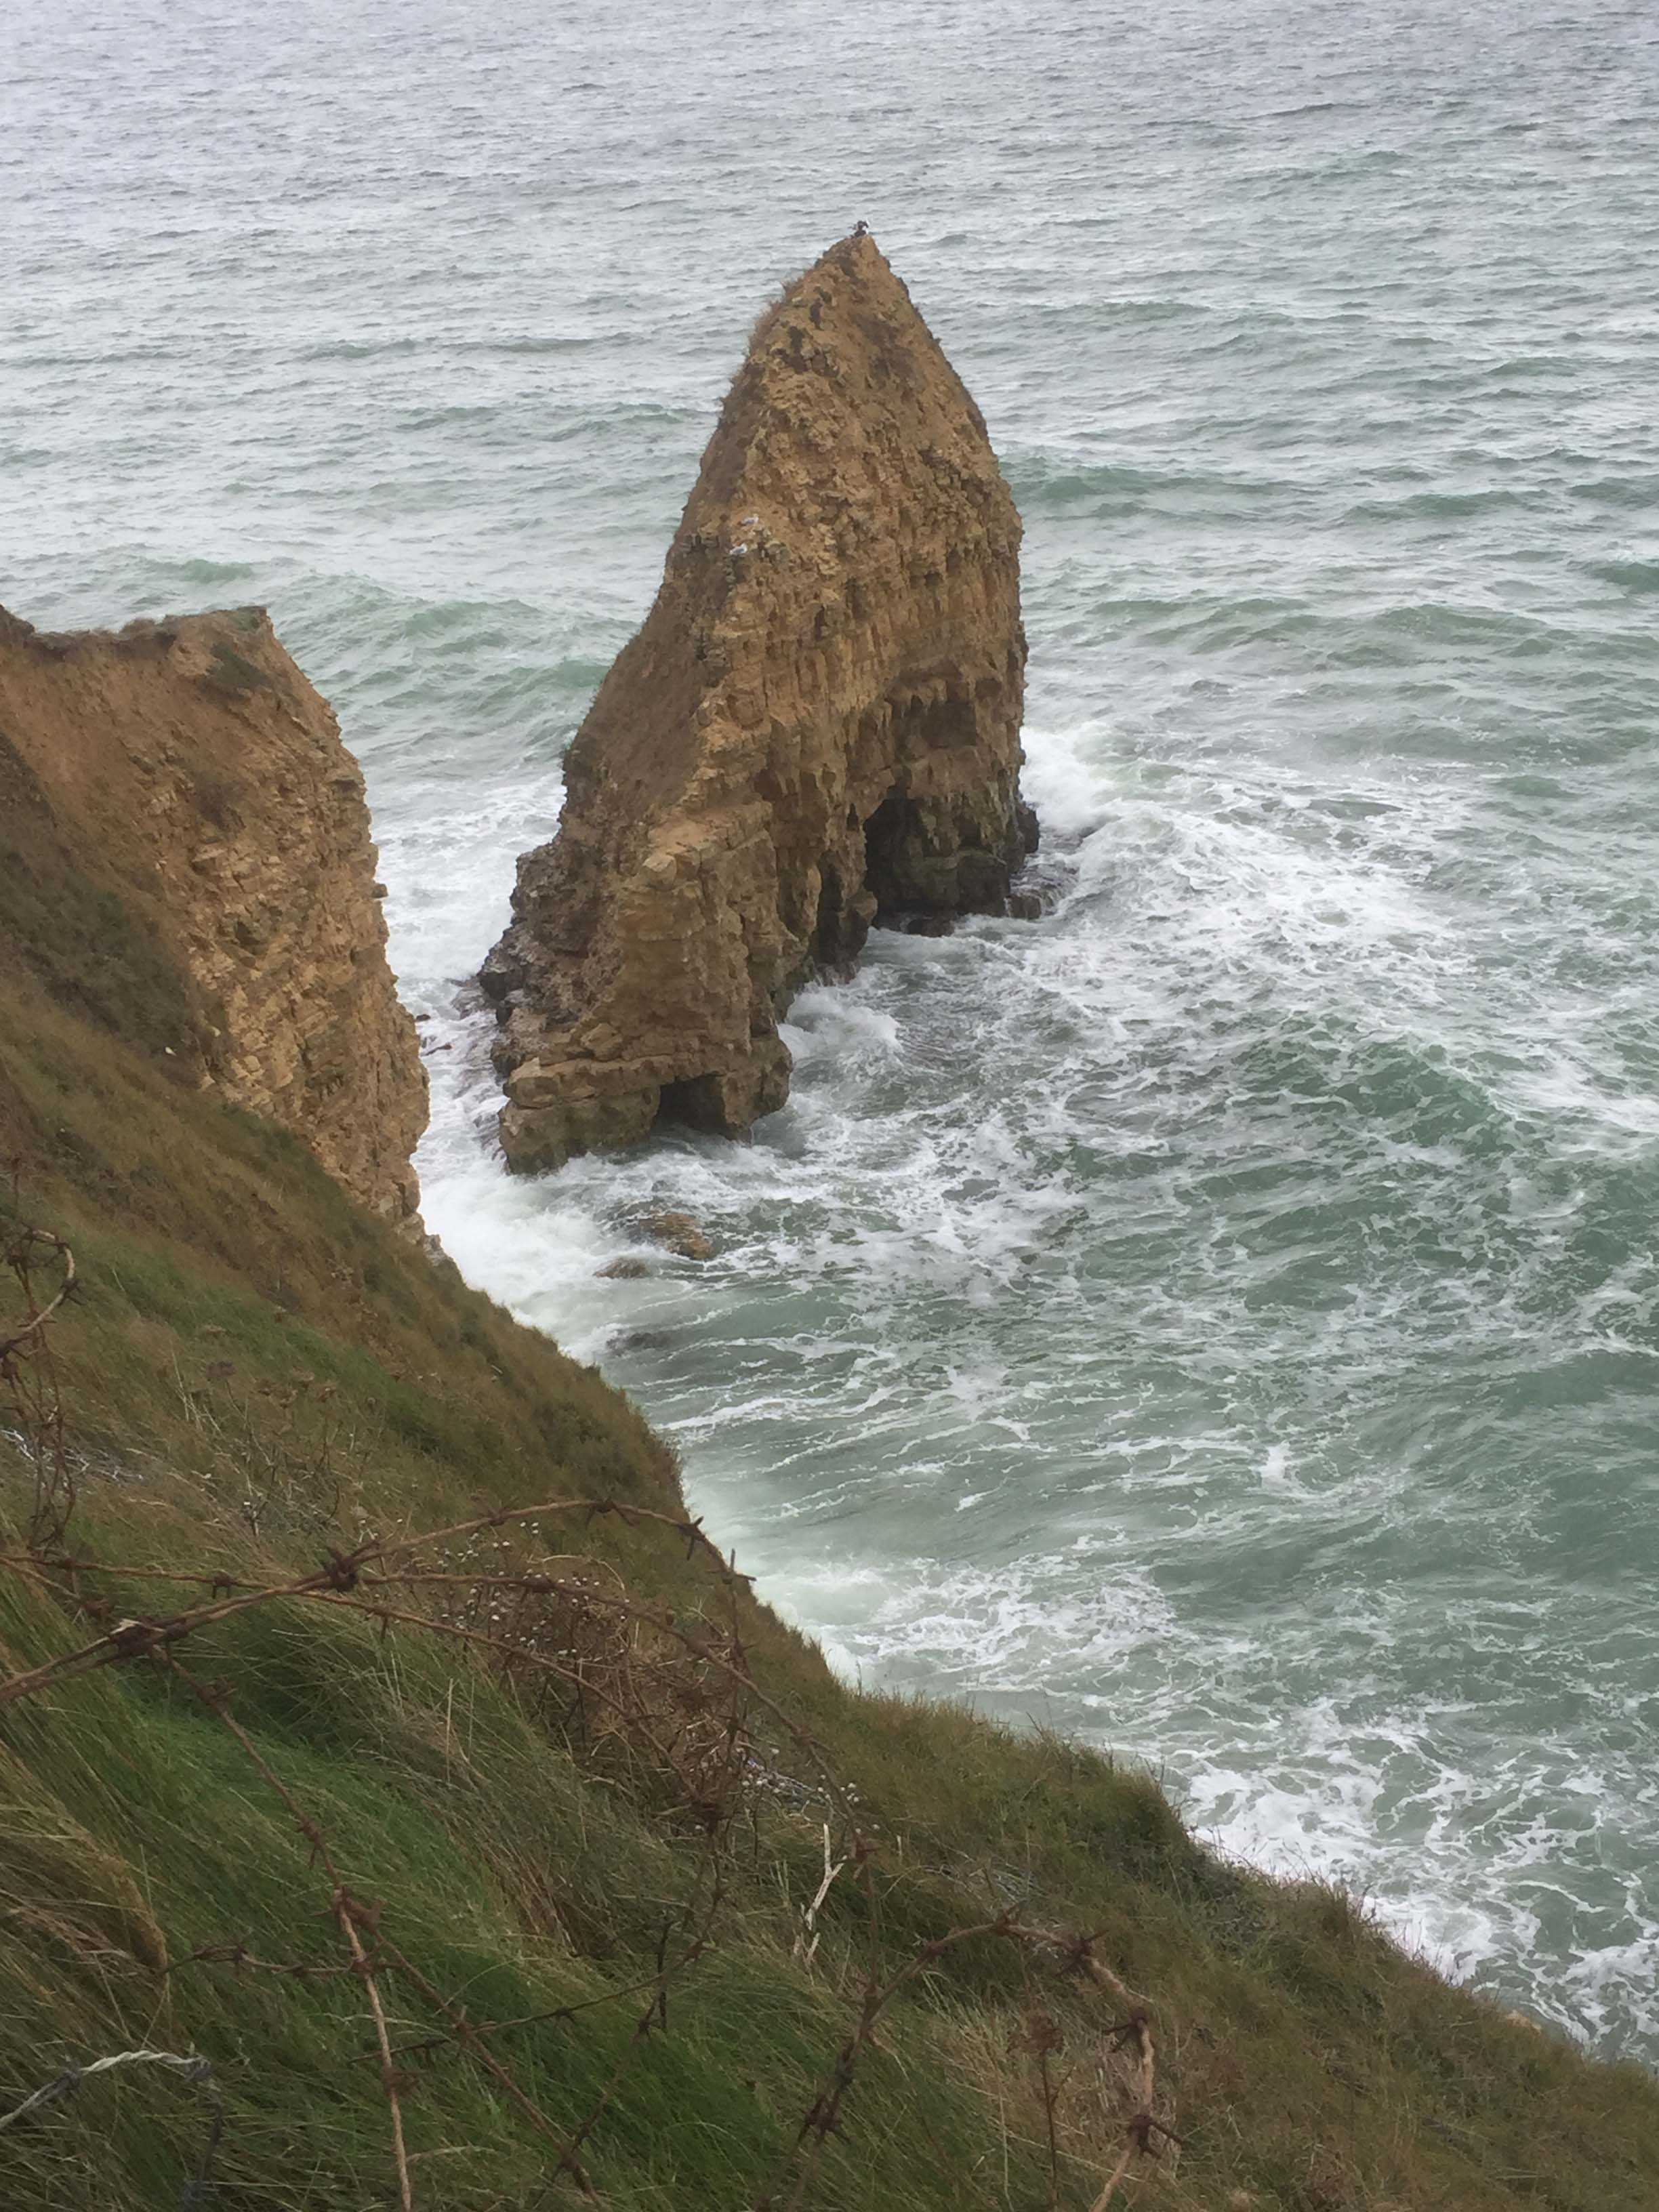 The Point du Hoc